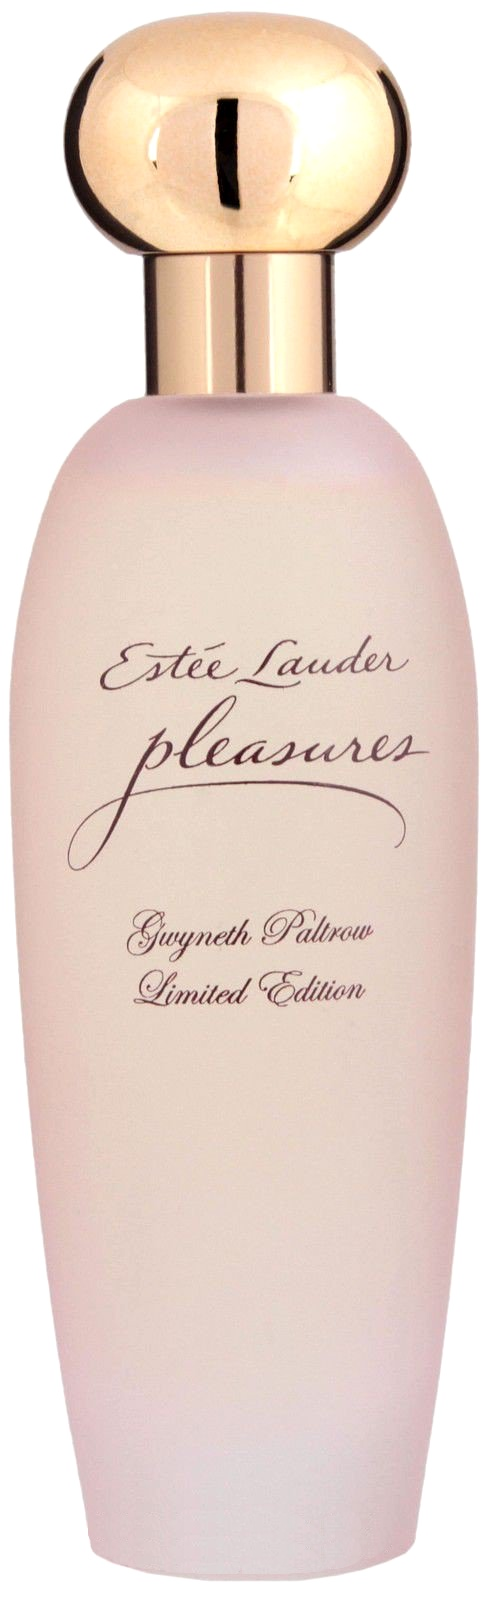 Estee Lauder Pleasures Gwyneth Paltrow Limited Edition